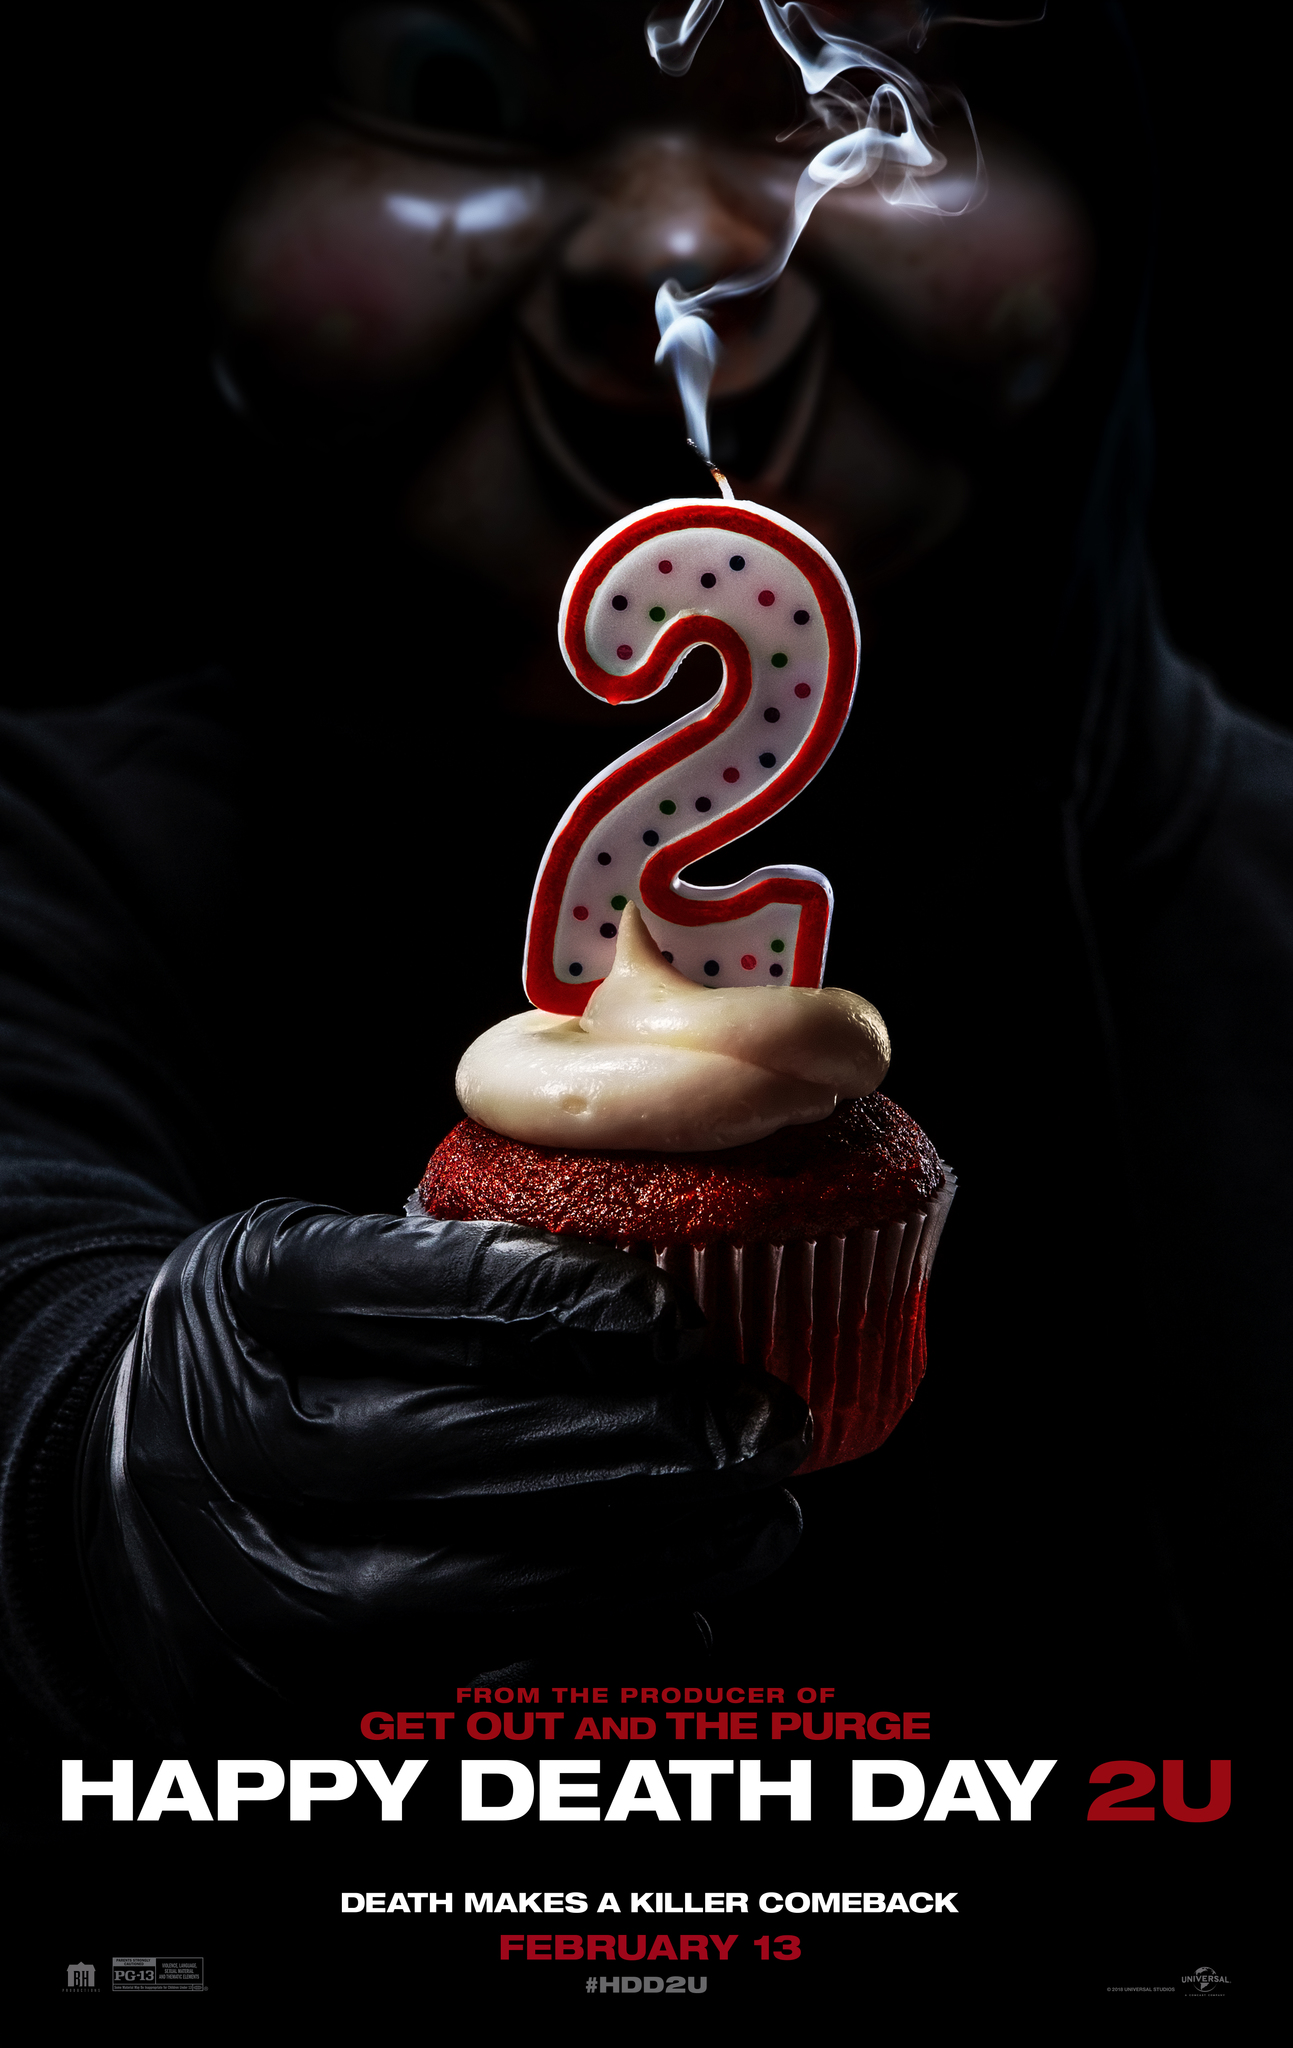 34. Happy Death Day 2U - Christopher Landon makes a ballsy move and branches out into a deeply sci-fi sequel, now only lightly touched with slasher tropes and motifs. Jessica Rothe cements herself as an iconic final girl and a whole lot of charm make Happy Death Day 2U a worthy successor, although not in line genre wise with it's teen scream predecessor.